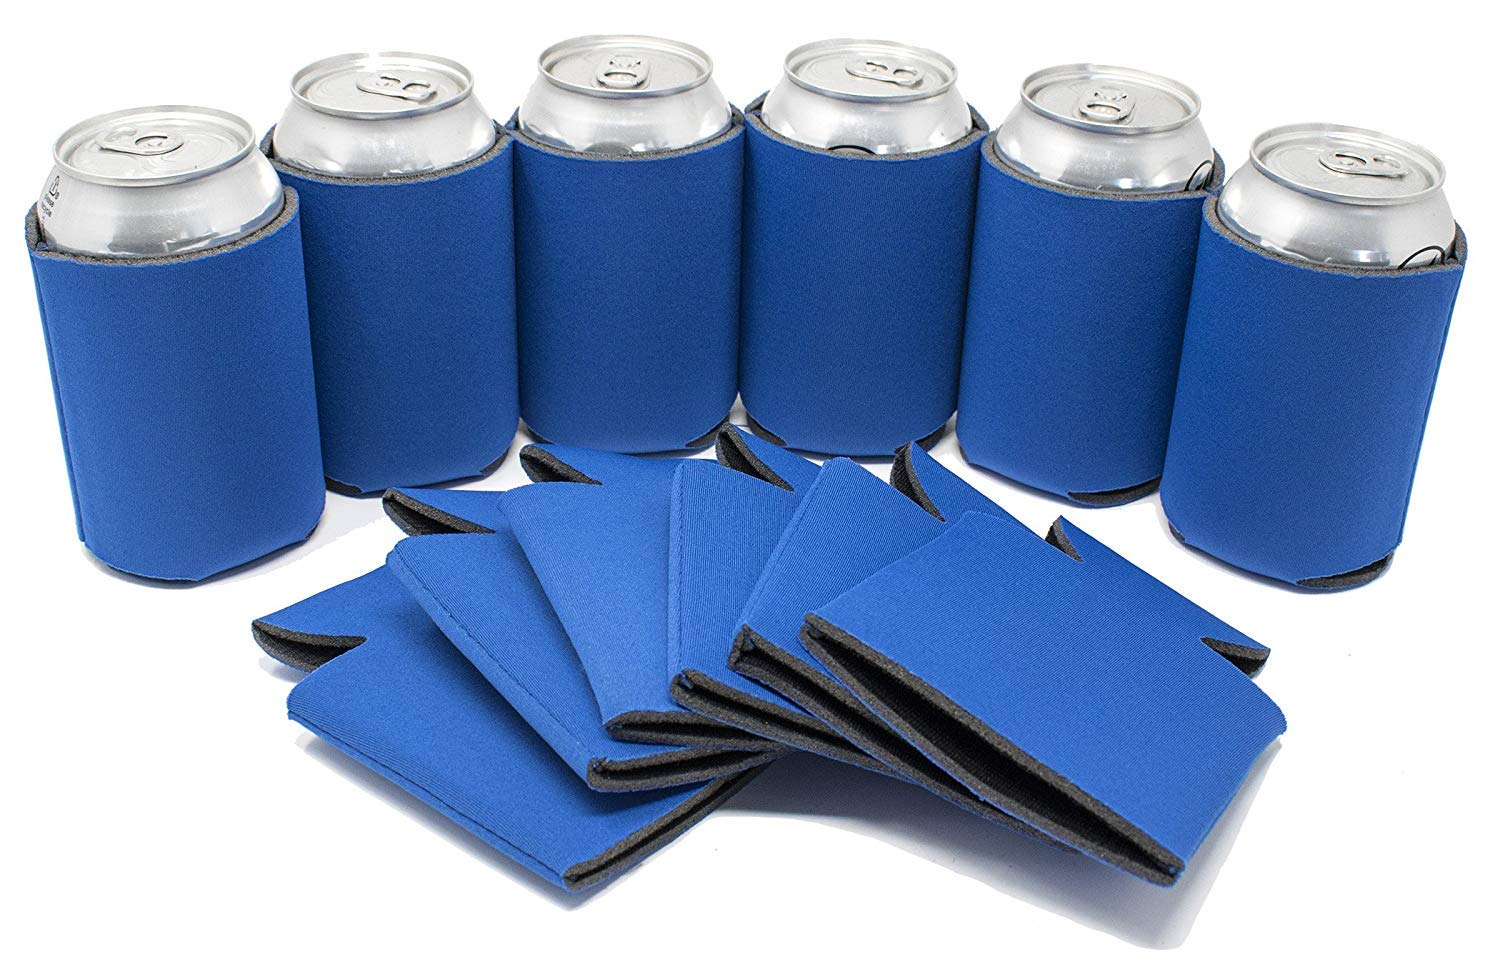 TahoeBay 25 Blank Beer Can Coolers, Plain Bulk Collapsible Soda Cover Coolies, DIY Personalized Sublimation Sleeves for Weddings, Bachelorette Parties, Funny HTV Party Favors (Royal Blue, 25)